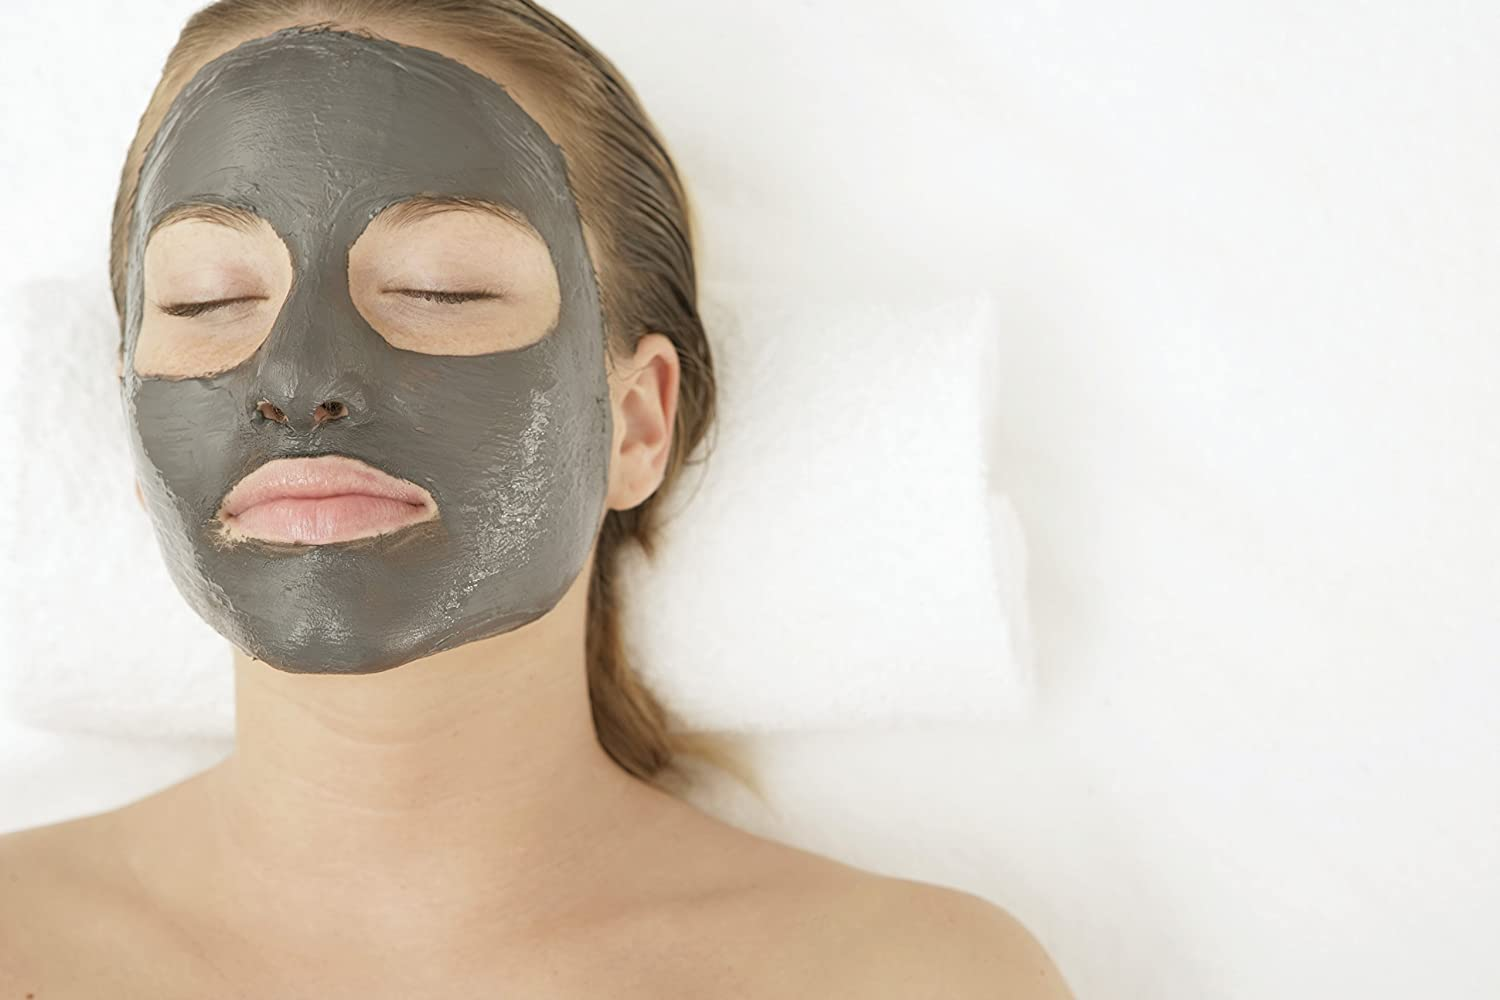 Facial mud masks